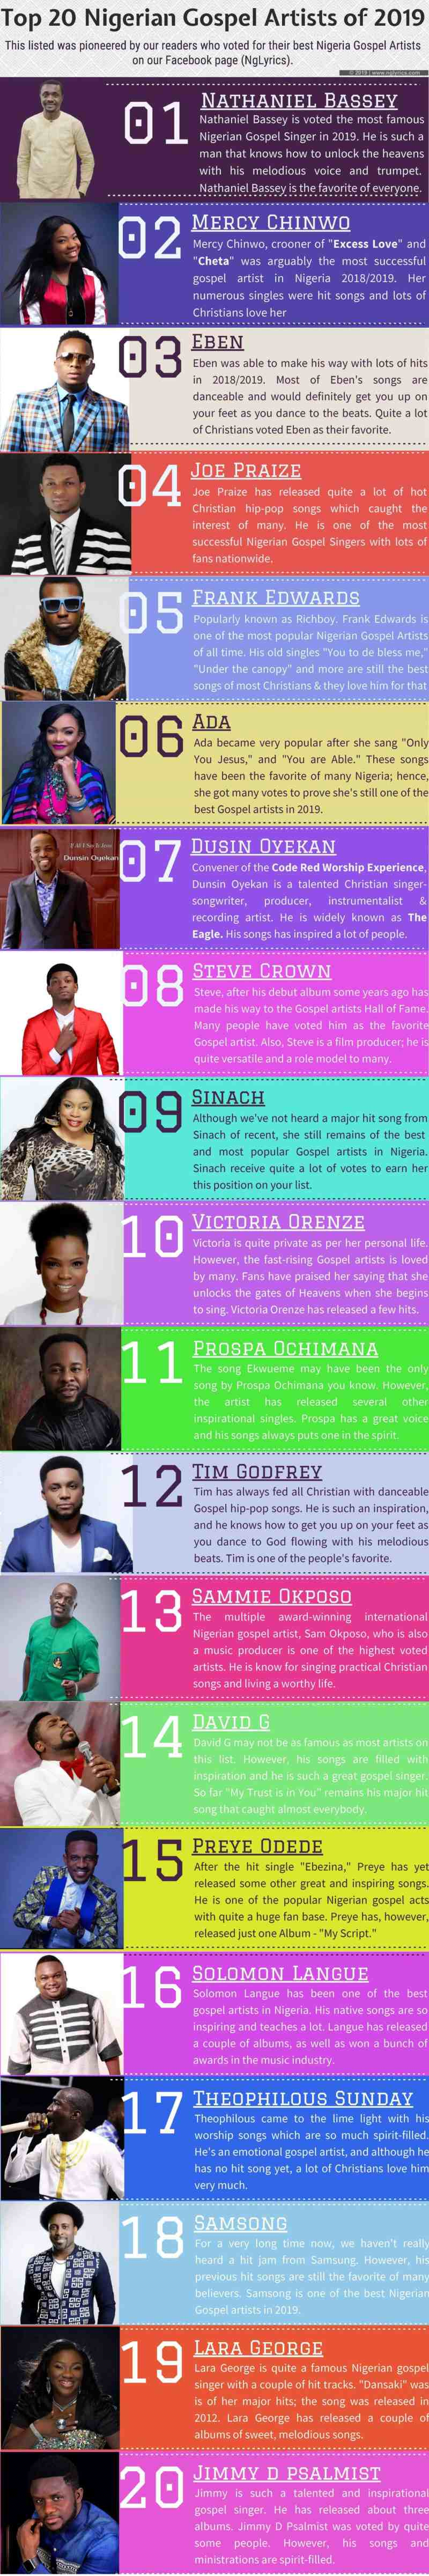 Top Nigerian Gospel Artists of 2019